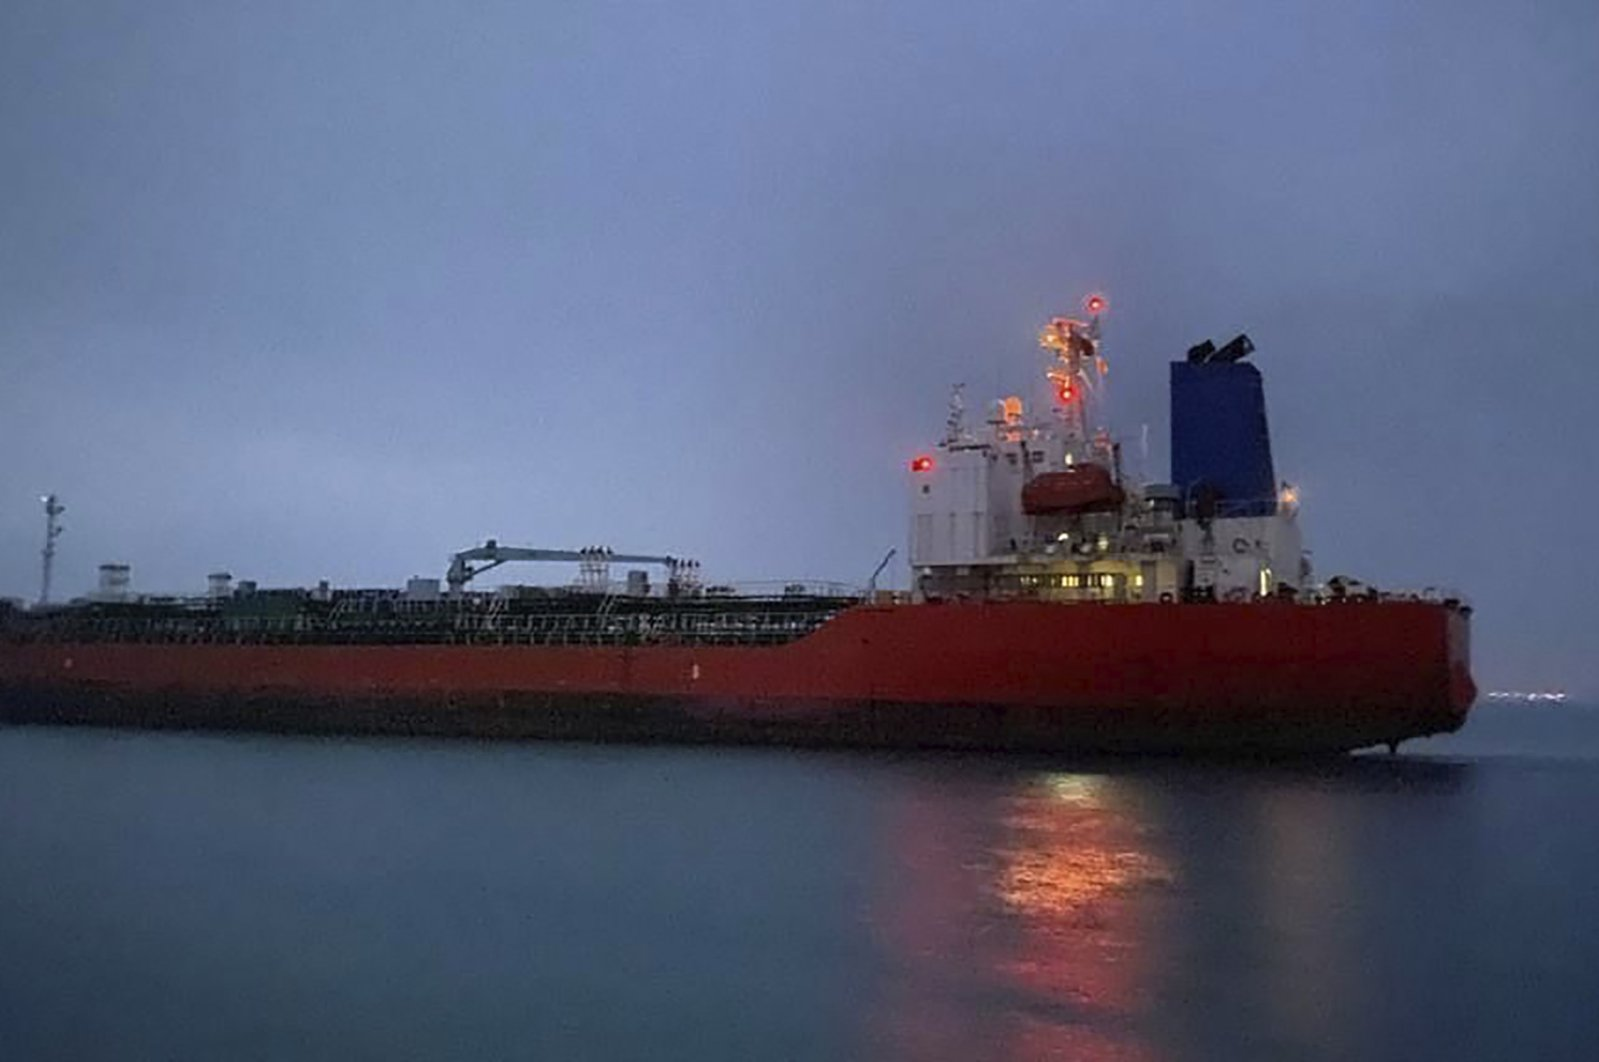 In this photo provided by South Korea's Foreign Ministry, the MT Hankuk Chemi leaves the port in Bandar Abbas, Iran, April 9, 2021. (AP Photo)